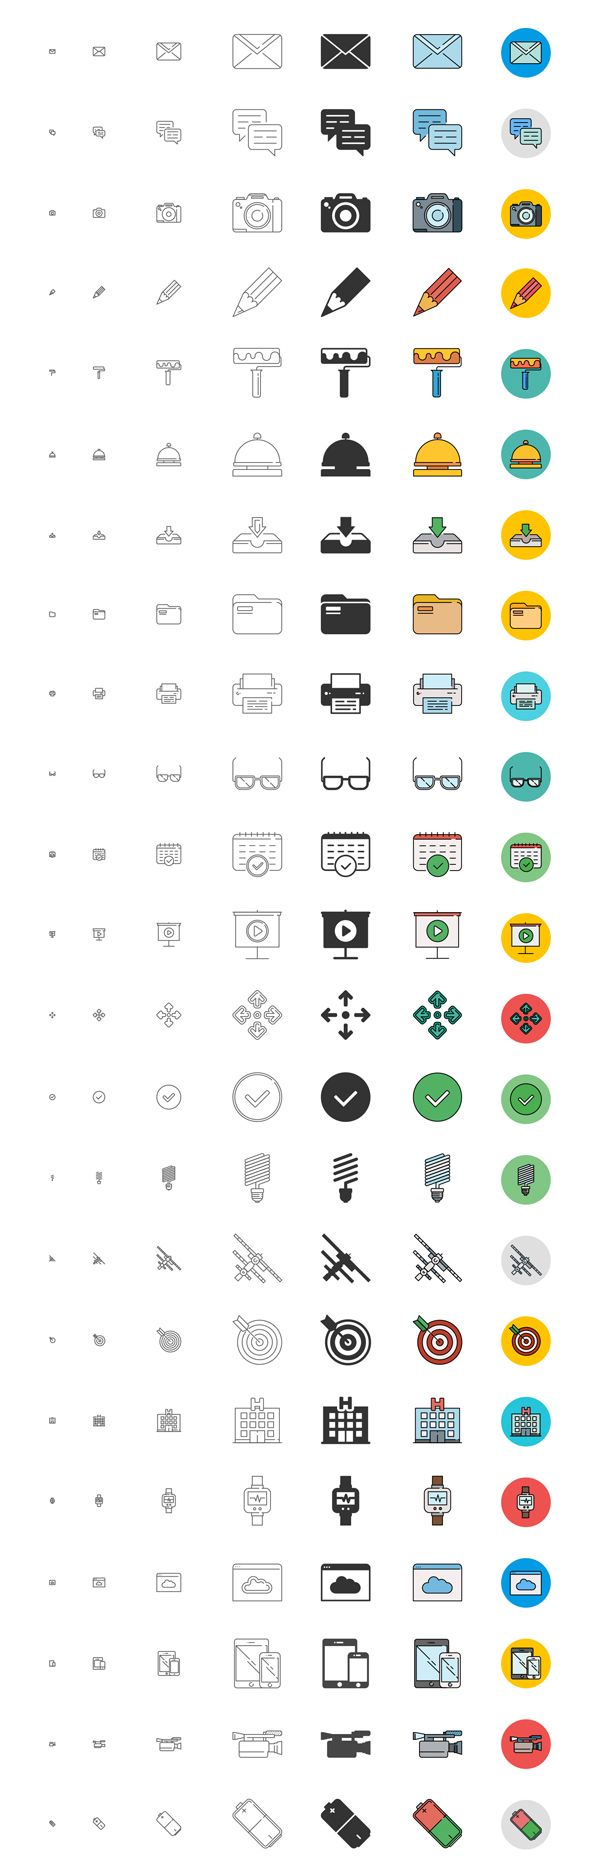 Free Responsive Icons Set - 192 Icons #freeicons #freepsdicons #lineicons #flaticons #vectoricons